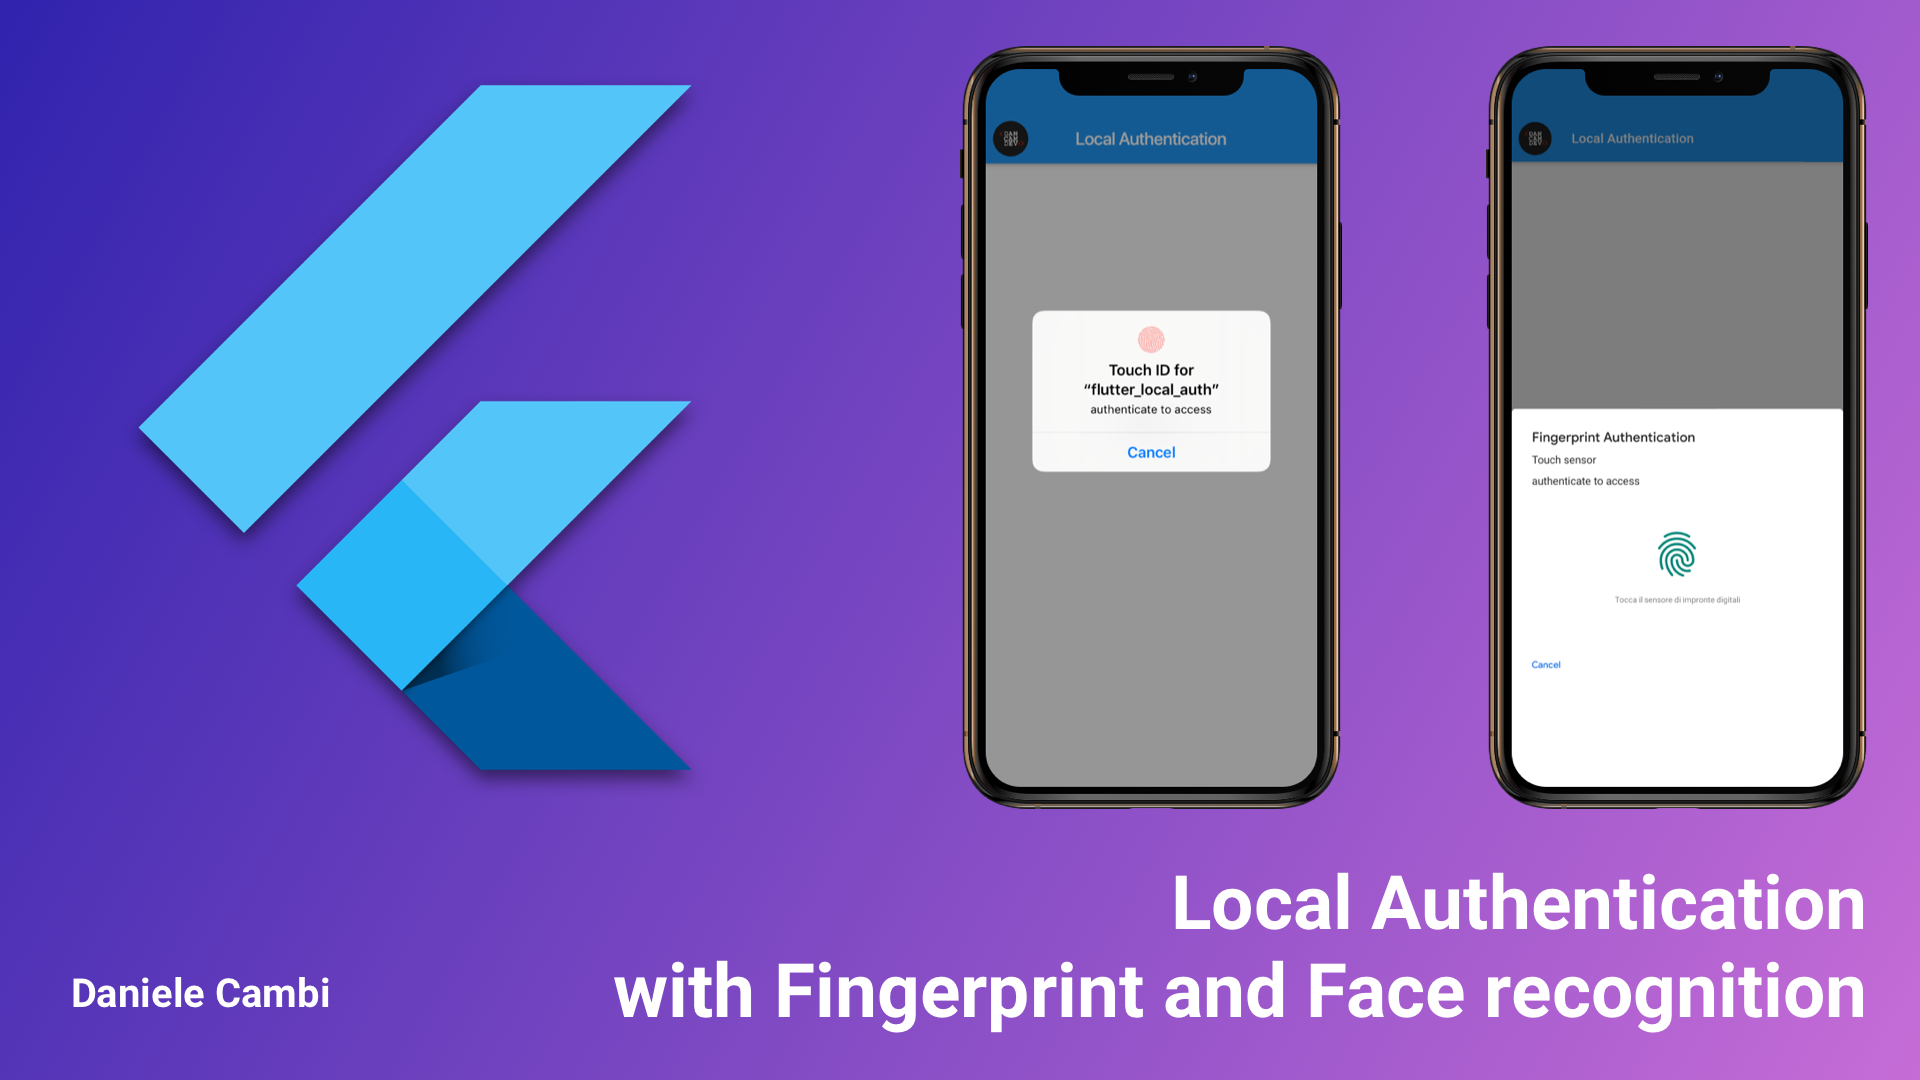 Flutter — Local Authentication with Fingerprint and Face